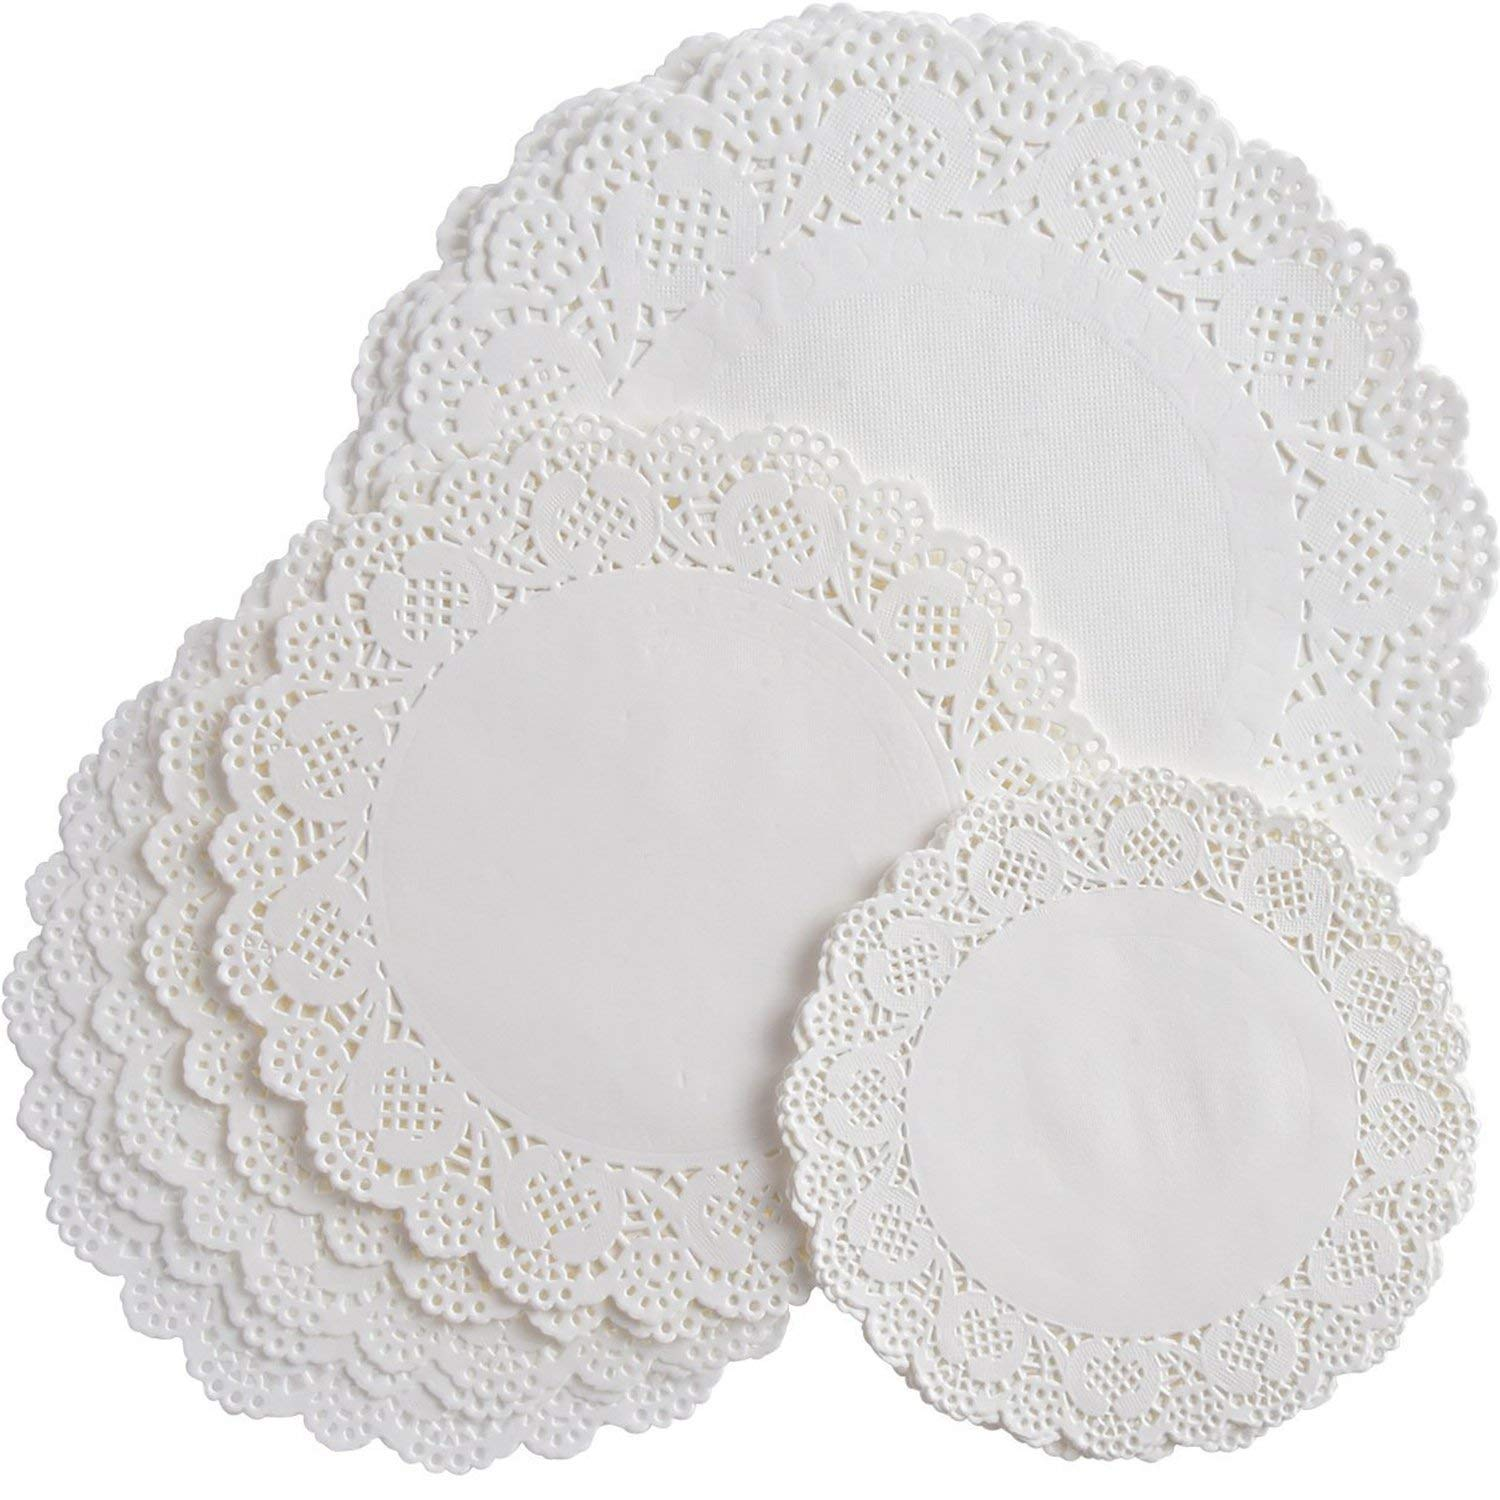 108 Pieces White Round Paper Doilies Lace Doily Cake Packaging Paper Pad for Party Wedding Decorations, 3 Sizes